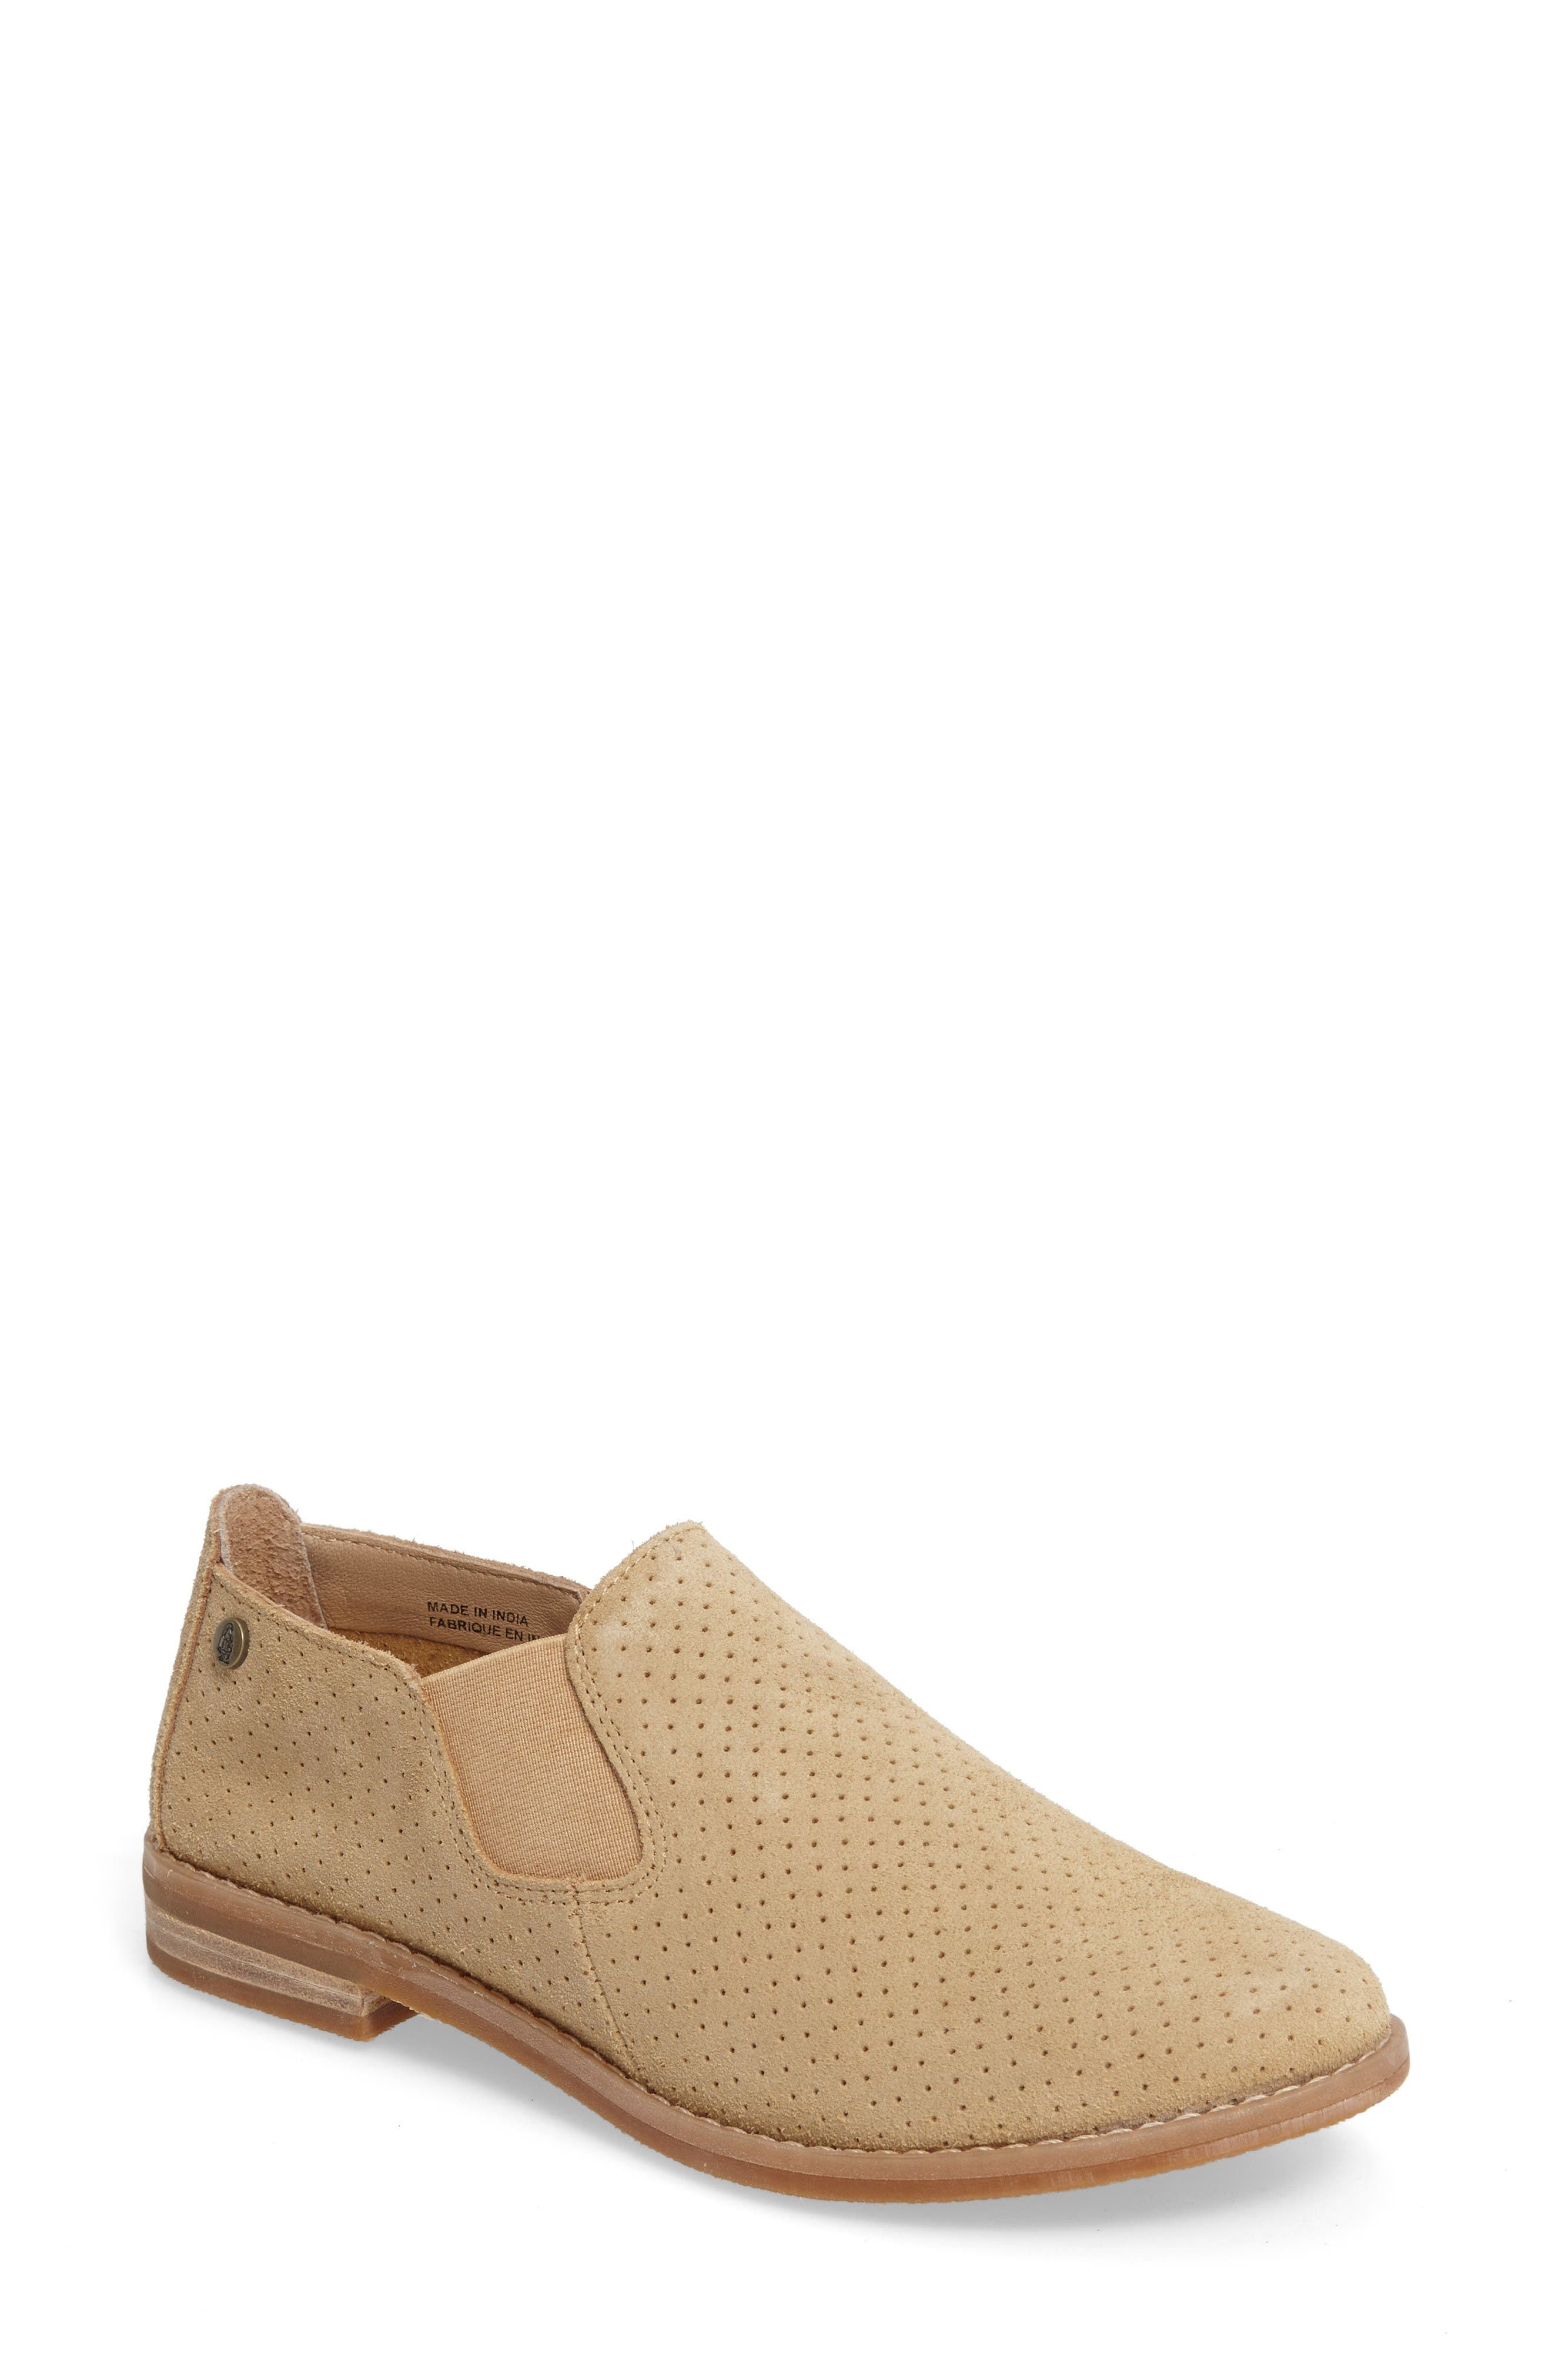 HUSH PUPPIES® Hush Puppies Analise Clever Slip-On